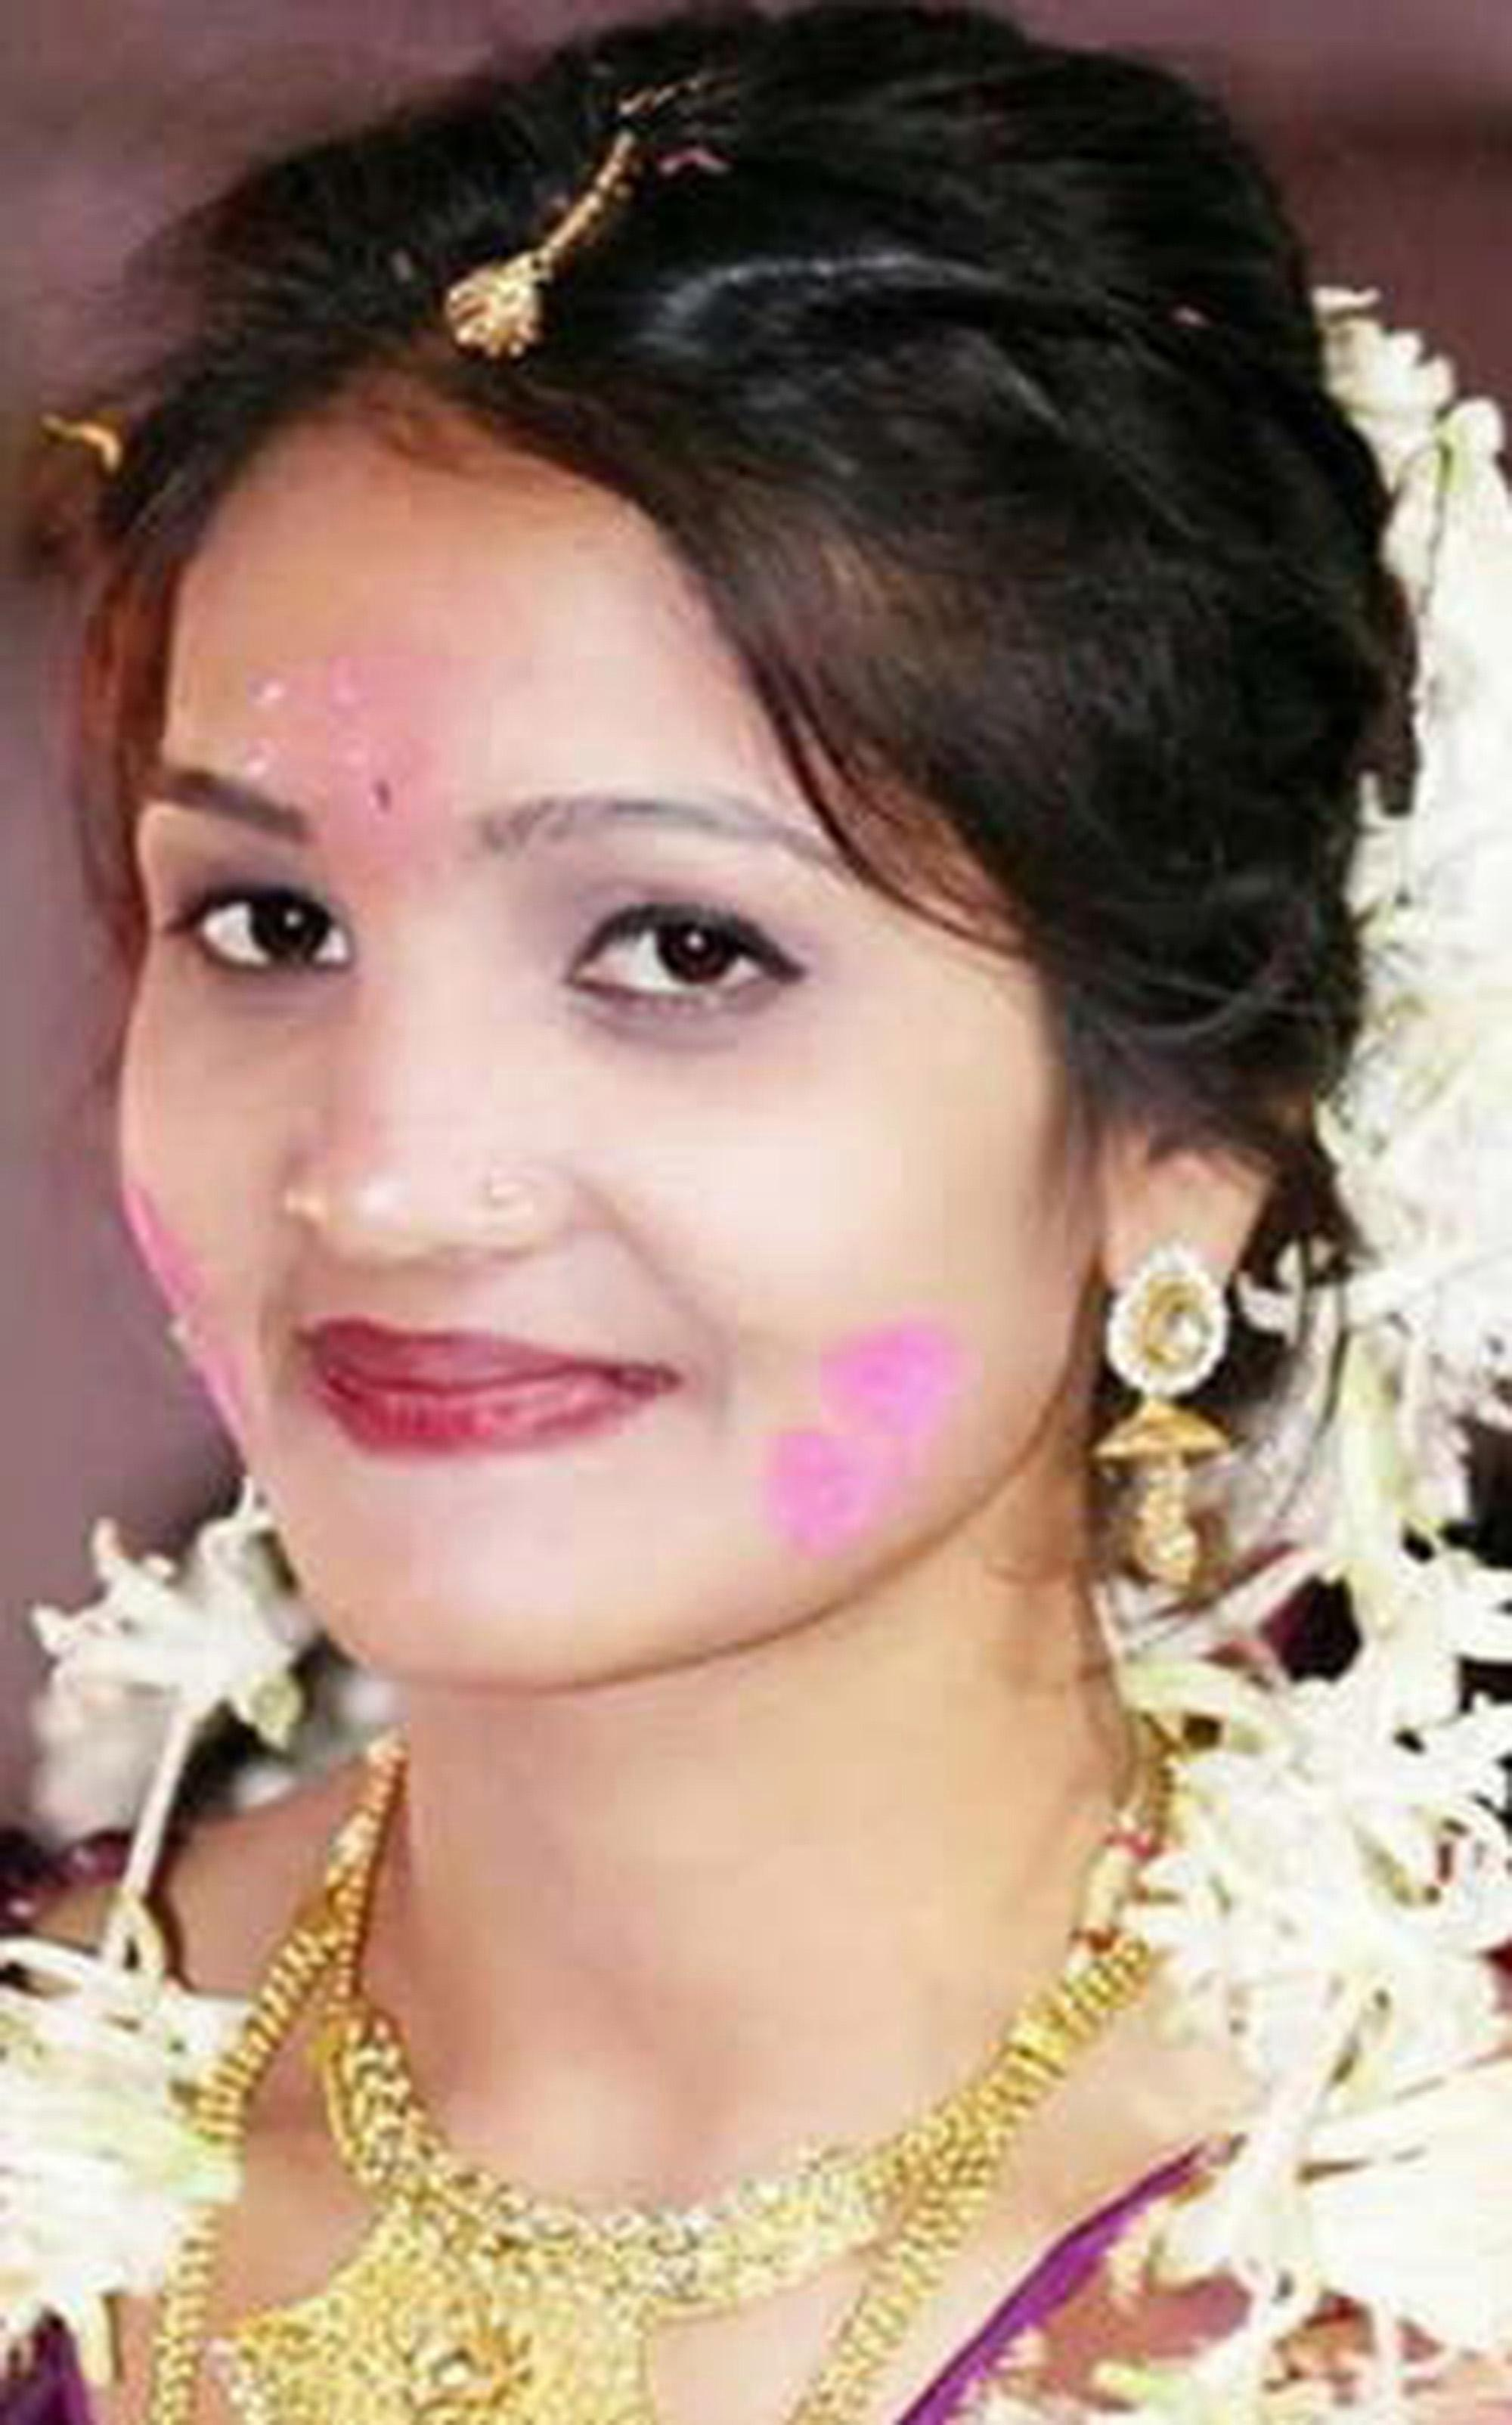 Bride-to-be kills herself with POISON days before her wedding after being 'blackmailed by ex'